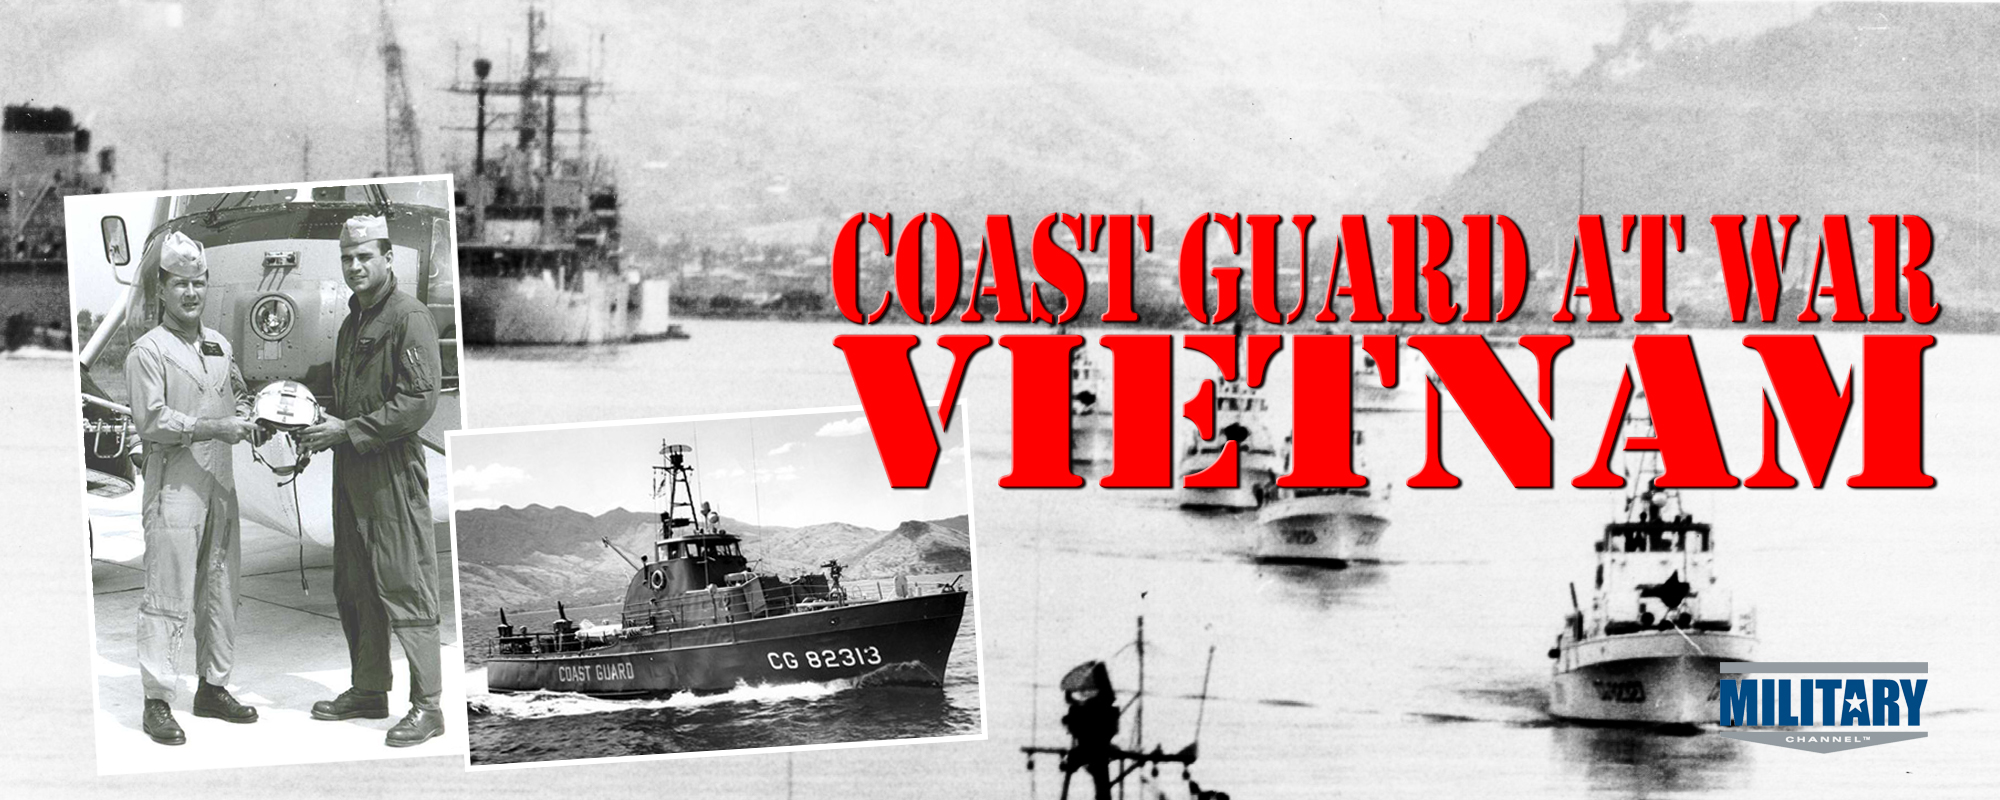 Coast Guard at War - The Military Channel